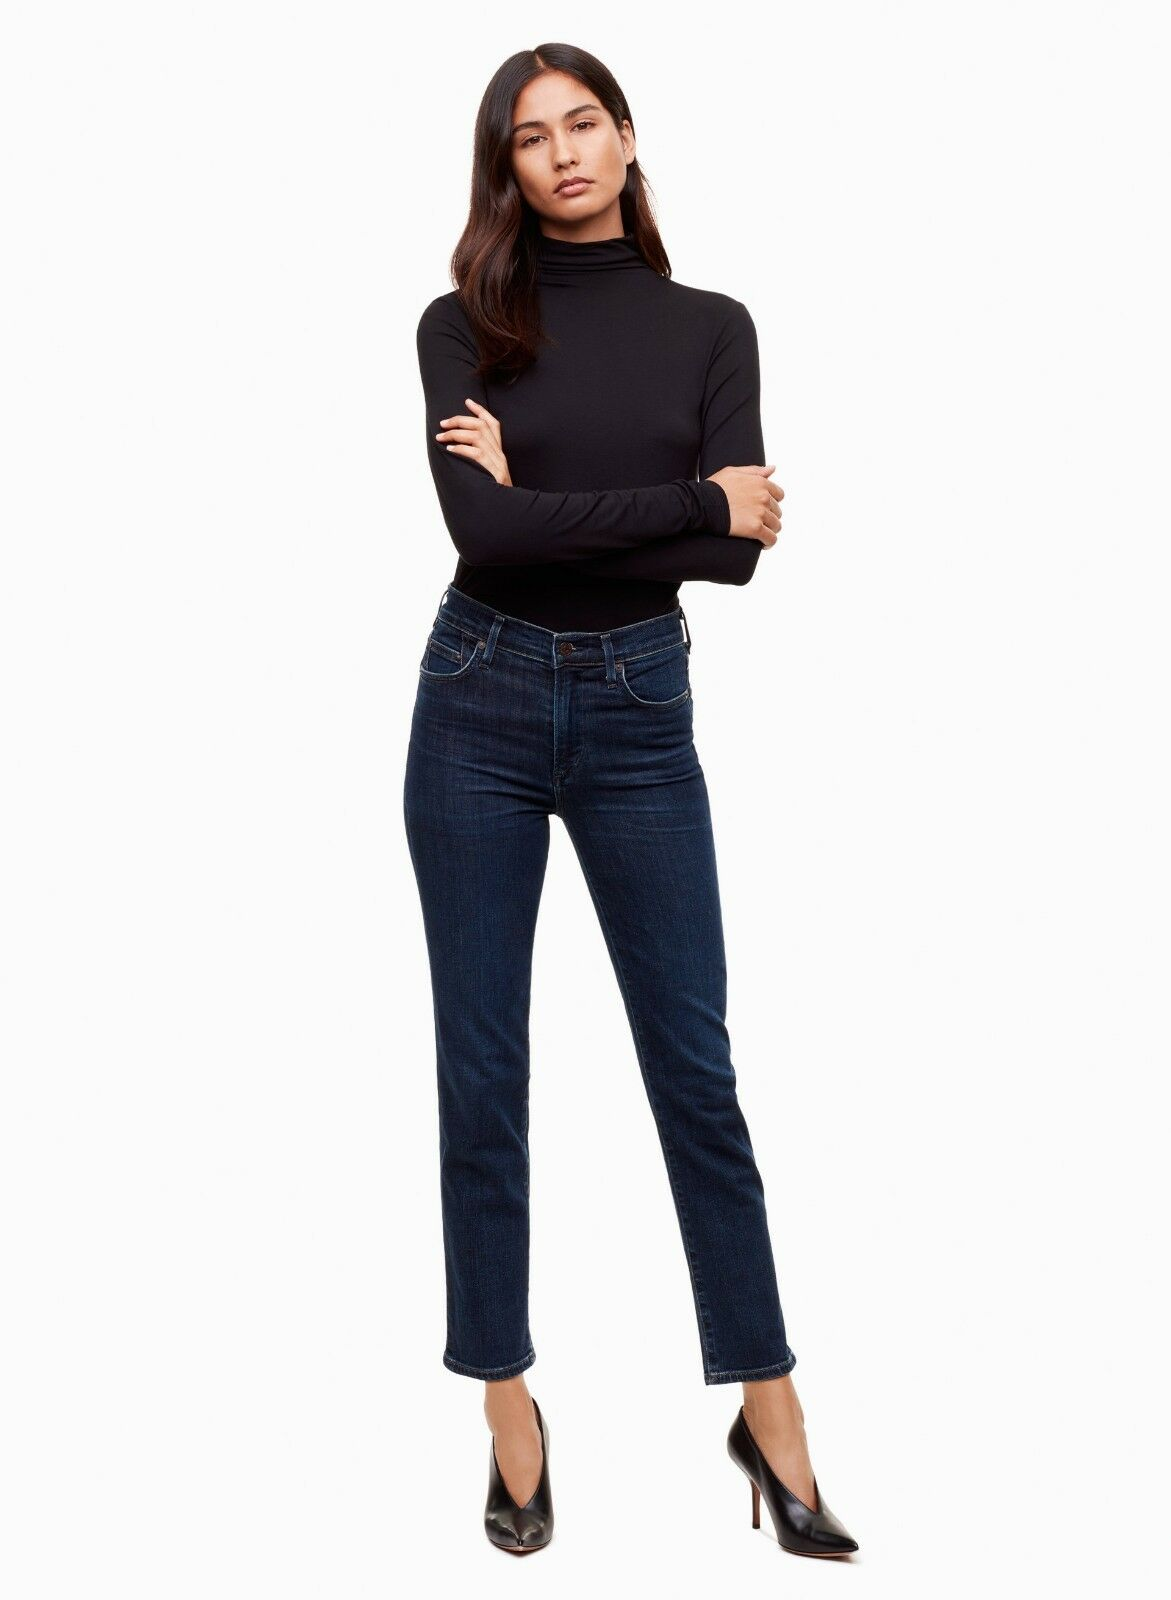 Citizens of Humanity Cara High Rise Cigarette Ankle Skinny Jean – Marisol - 25